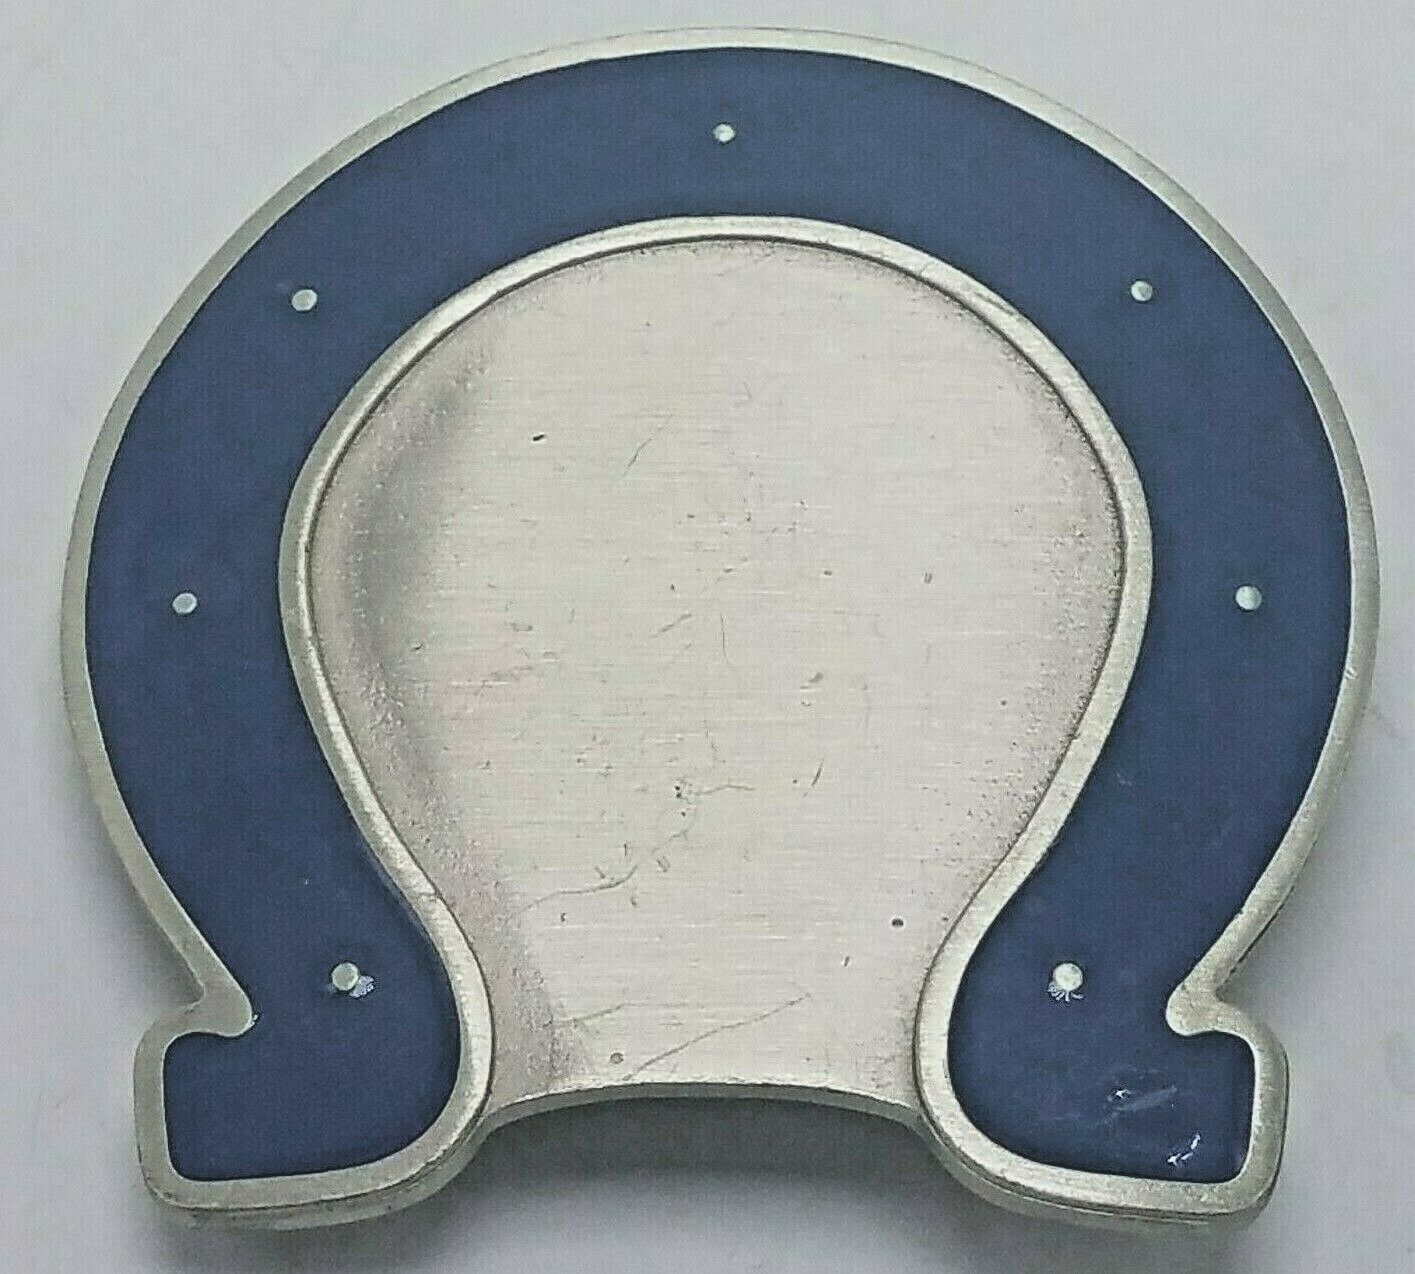 Indianapolis Colts NFL Football Officially Licensed Belt Buckle Pewter & Enamel